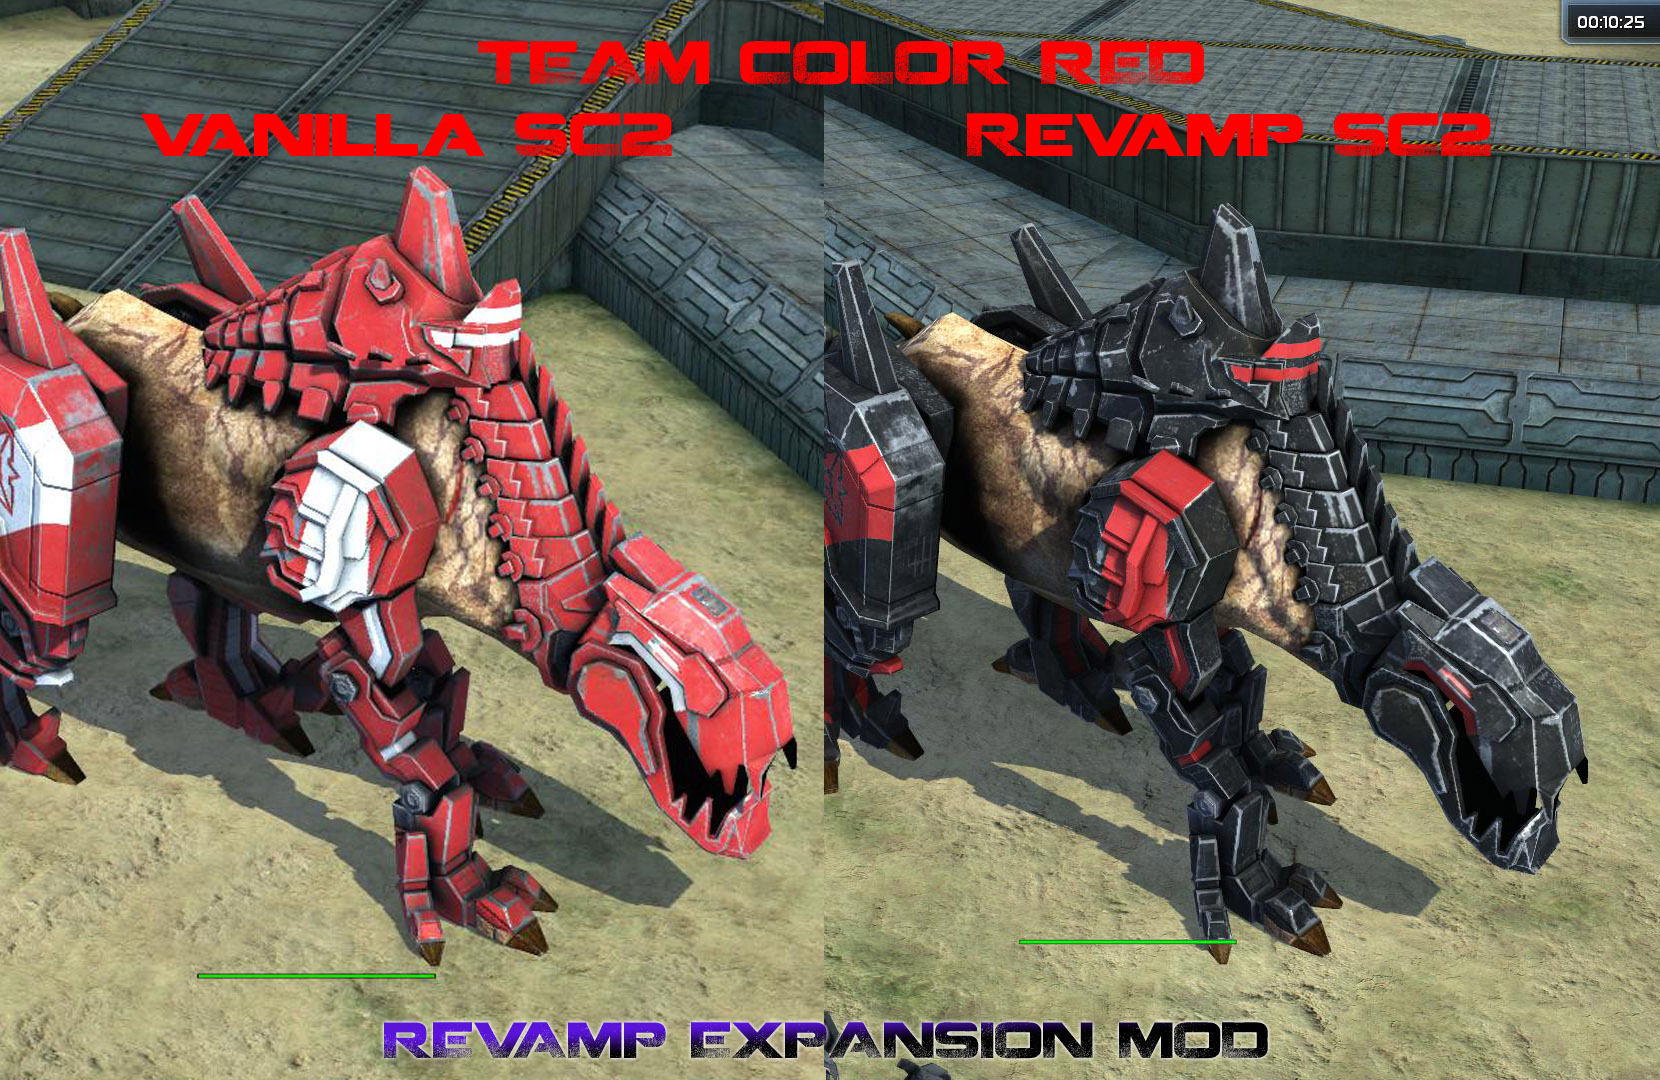 Editing Team Colors Image Revamp Expansion Mod Rve For